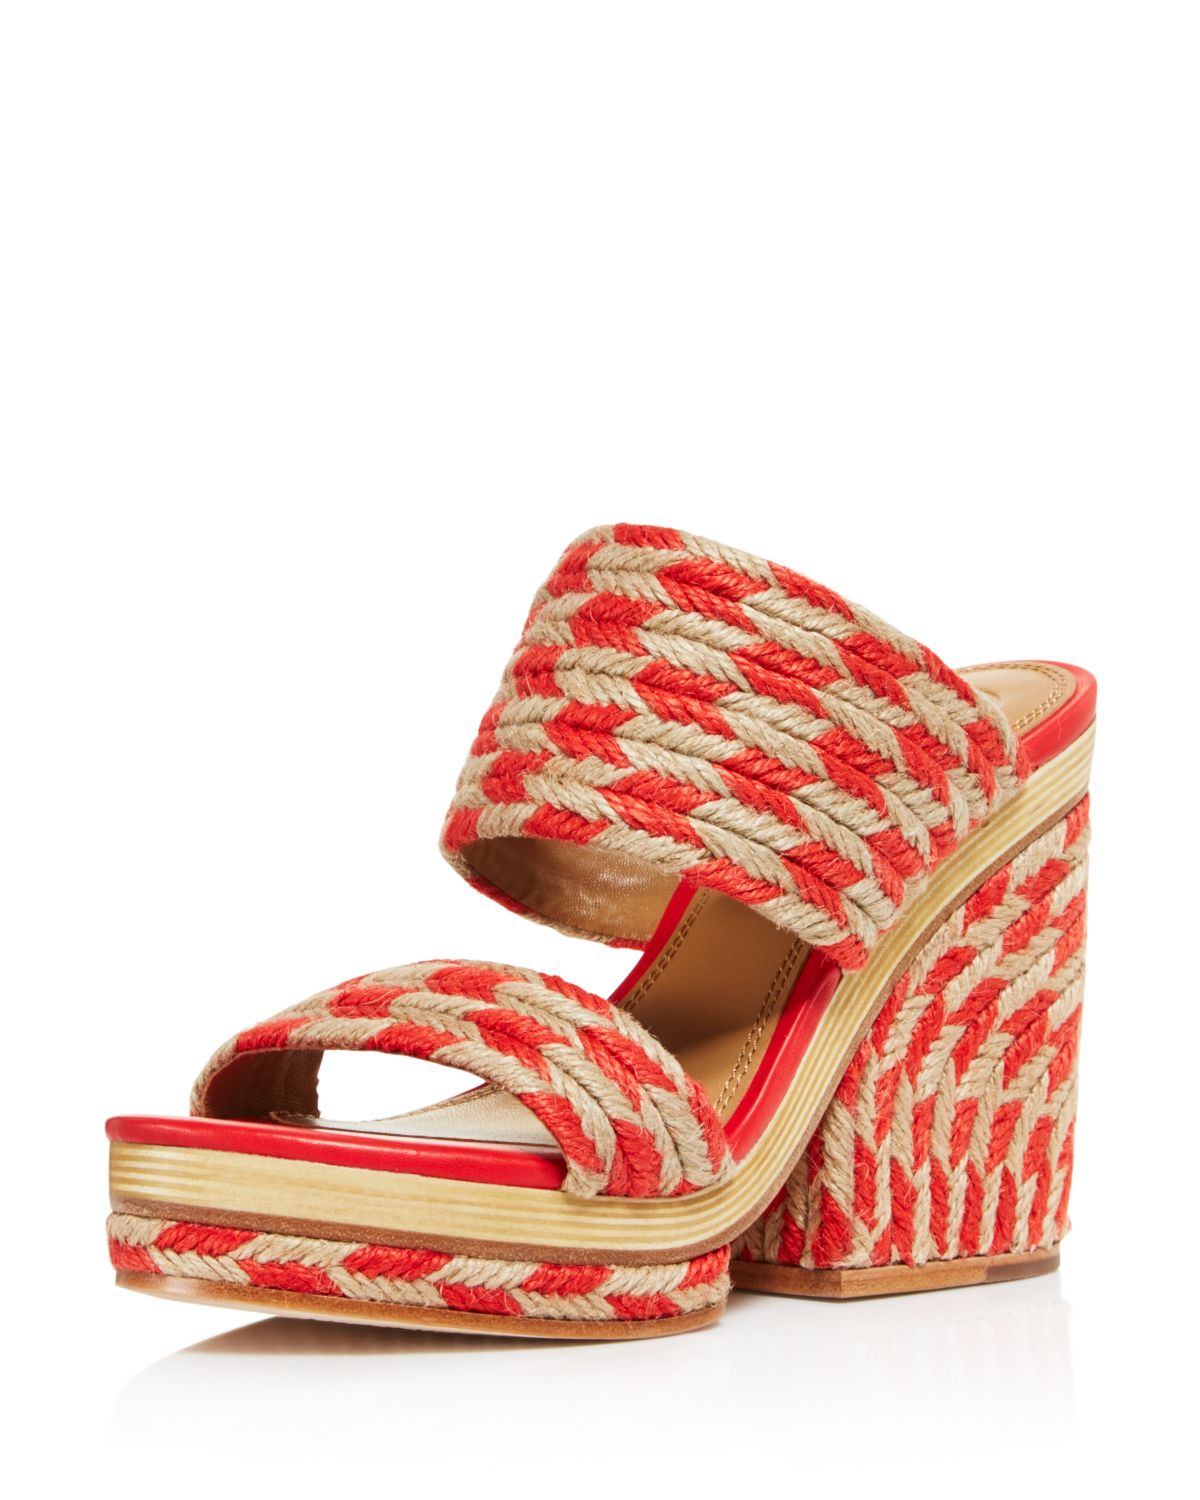 Tory Burch Women's Lola Woven Jute & Leather High-Heel Slide Sandals